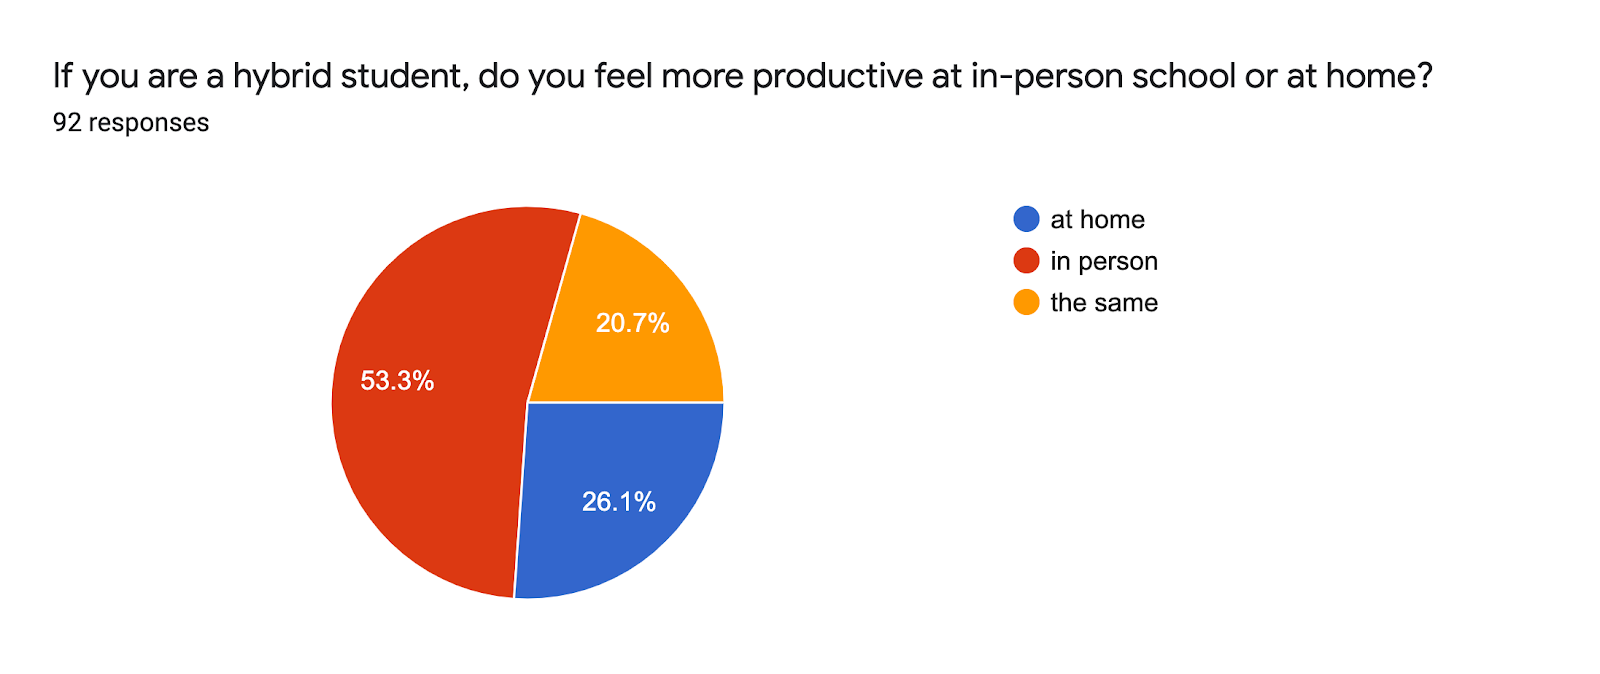 Forms response chart. Question title: If you are a hybrid student, do you feel more productive at in-person school or at home?. Number of responses: 92 responses.